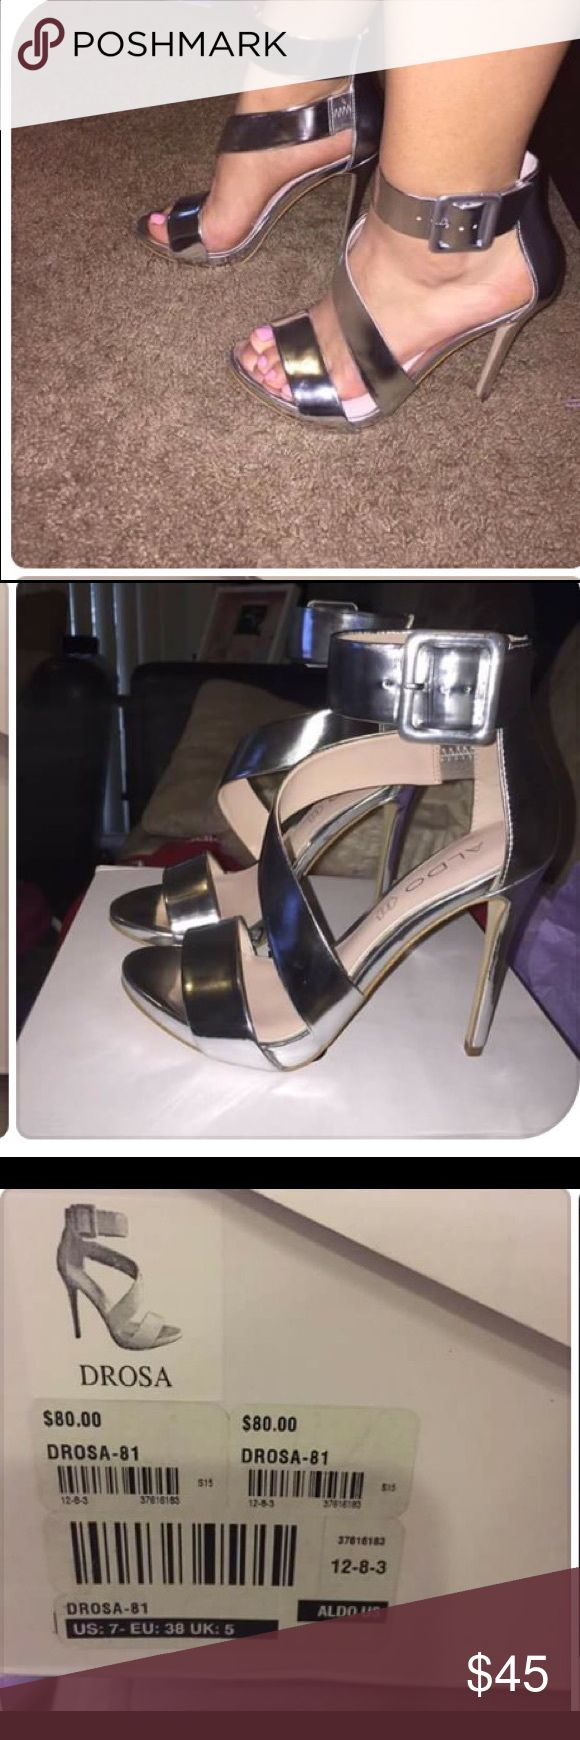 Brand new also metallic heel Beautiful Aldo metallic heels! I have had these for a while and just haven't got a chance to wear them, their is nothing wrong with them Aldo Shoes Heels